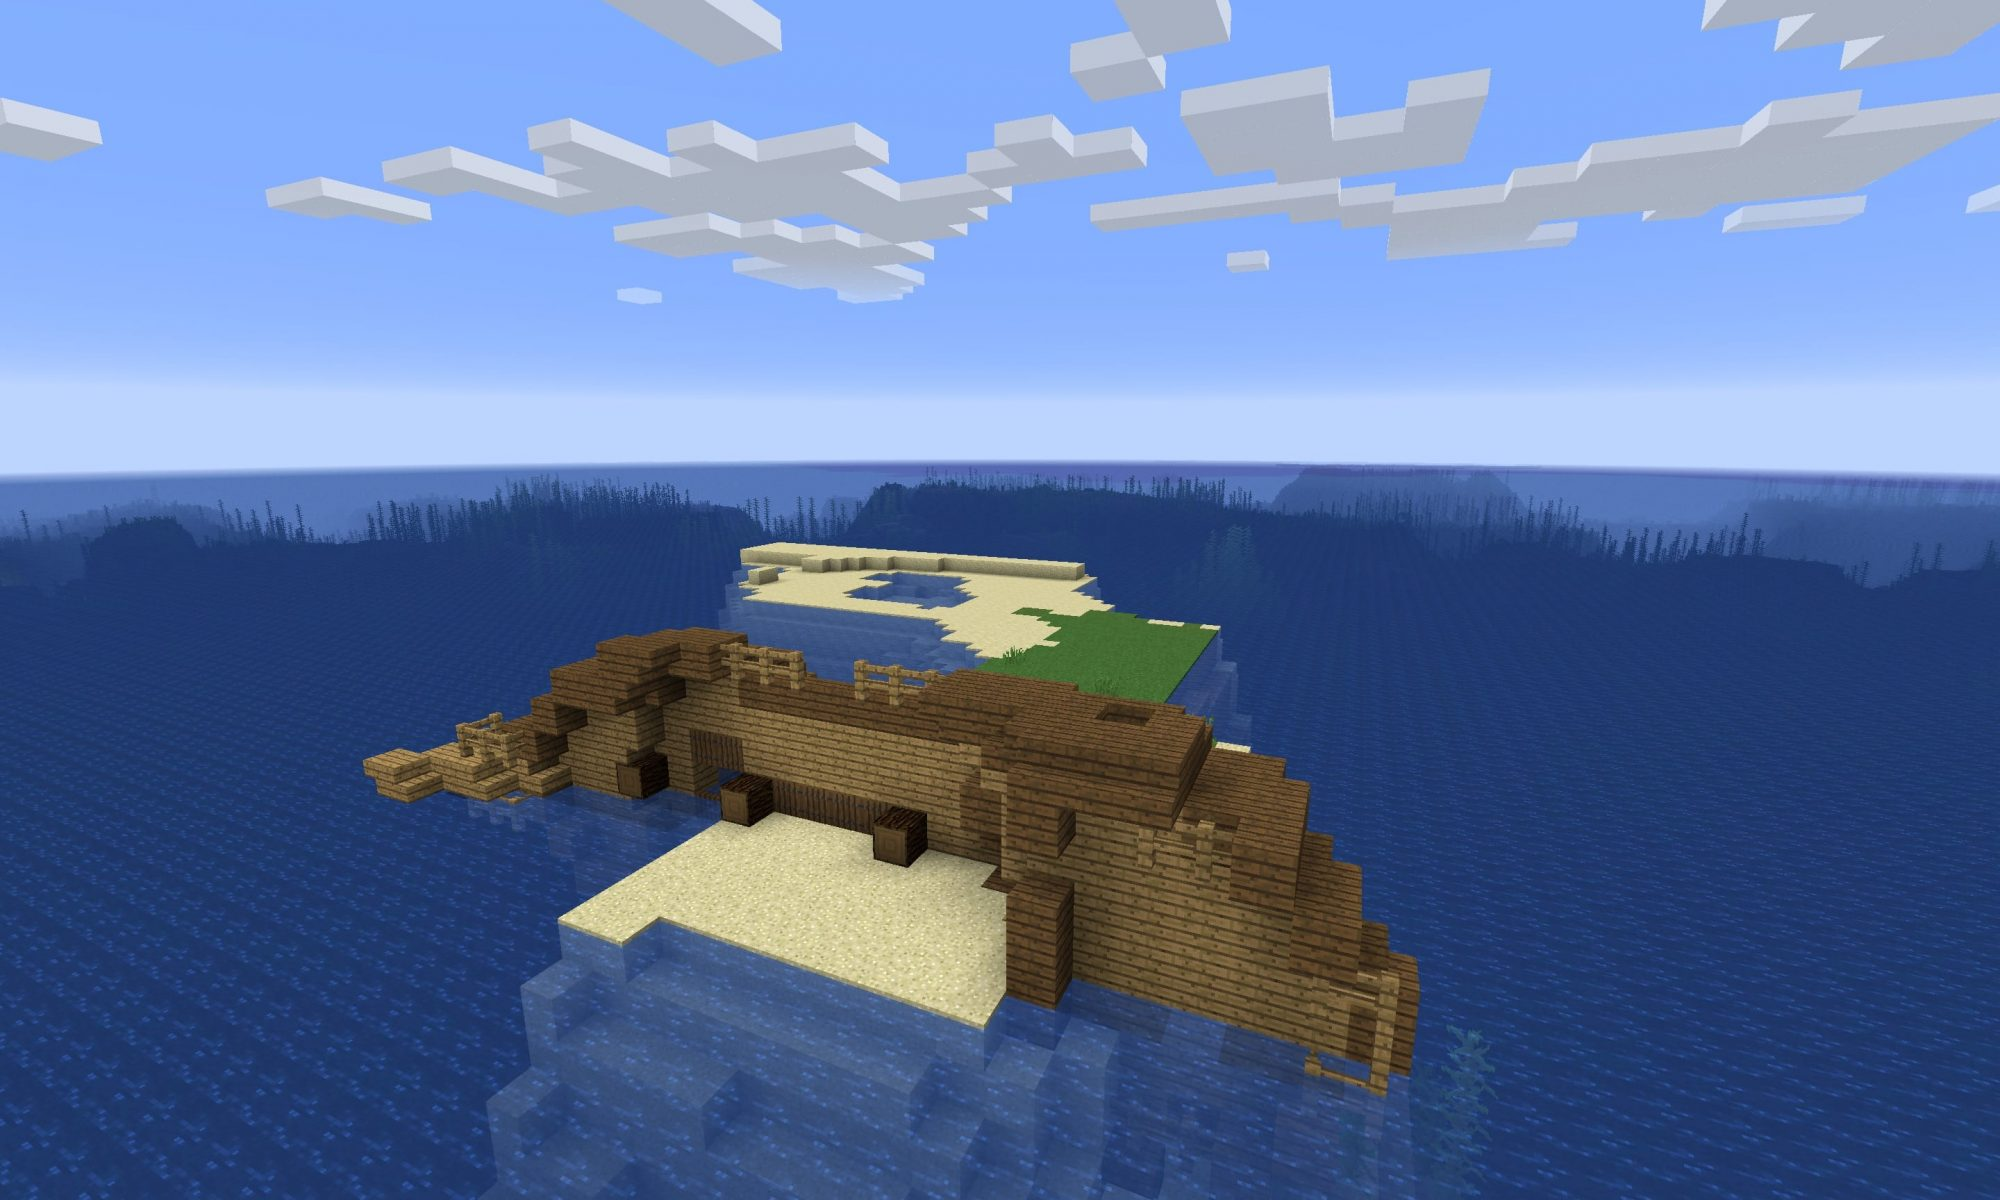 Minecraft Shipwreck Seed - Minecraft Survival Island Seed